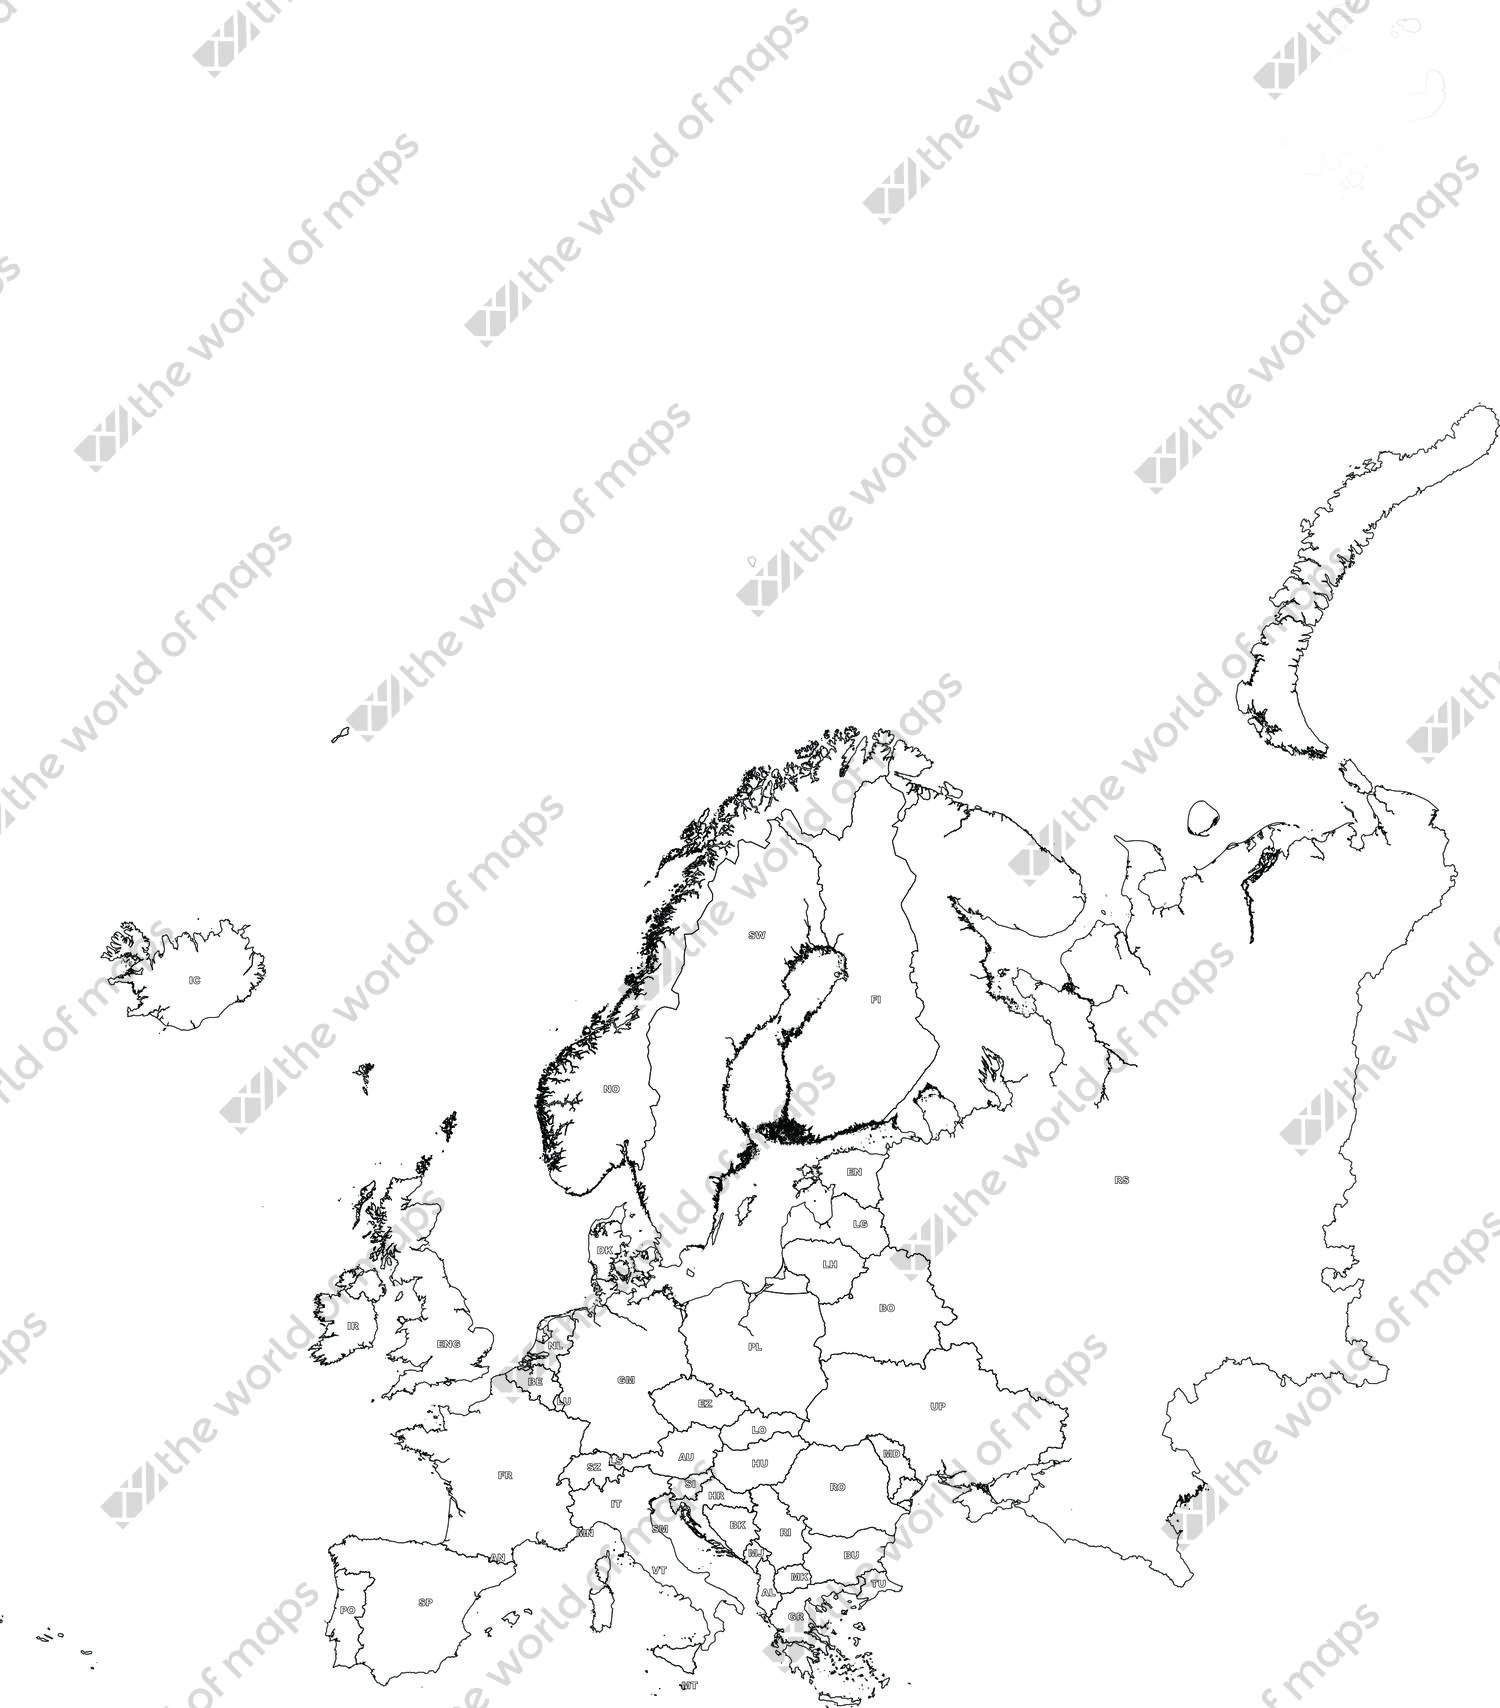 Digital map of Europe (free)